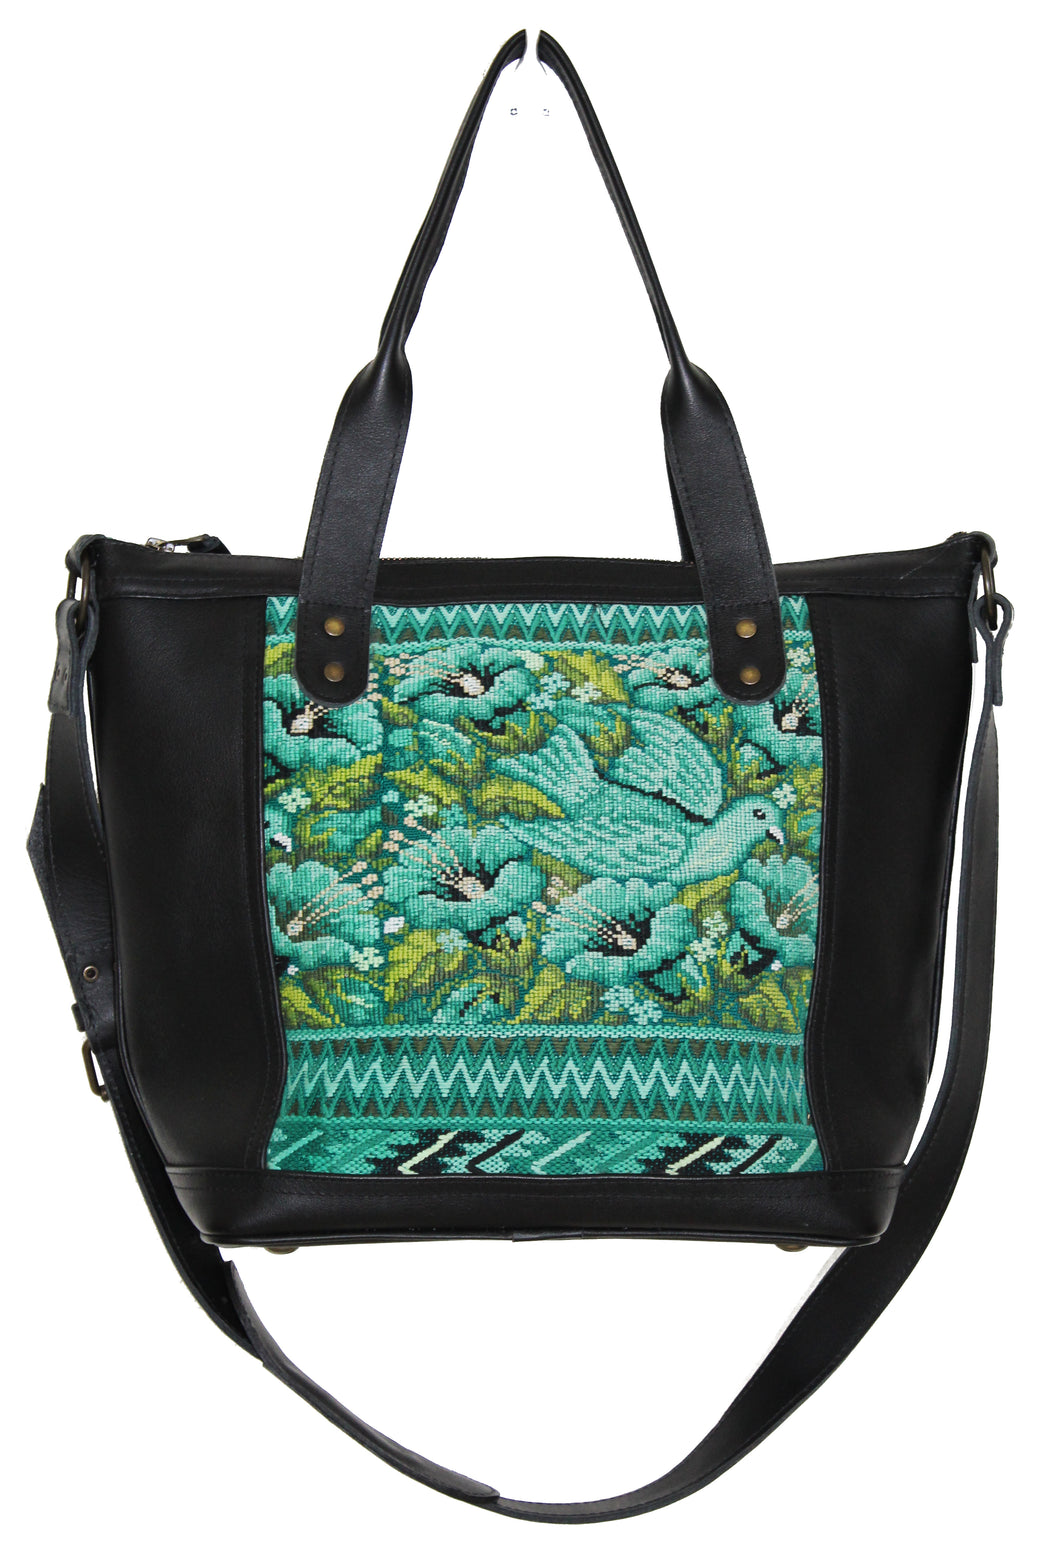 MoonLake Design Renata medium crossbody bag in black leather and captivating huipil design of birds and flowers in different shades of green